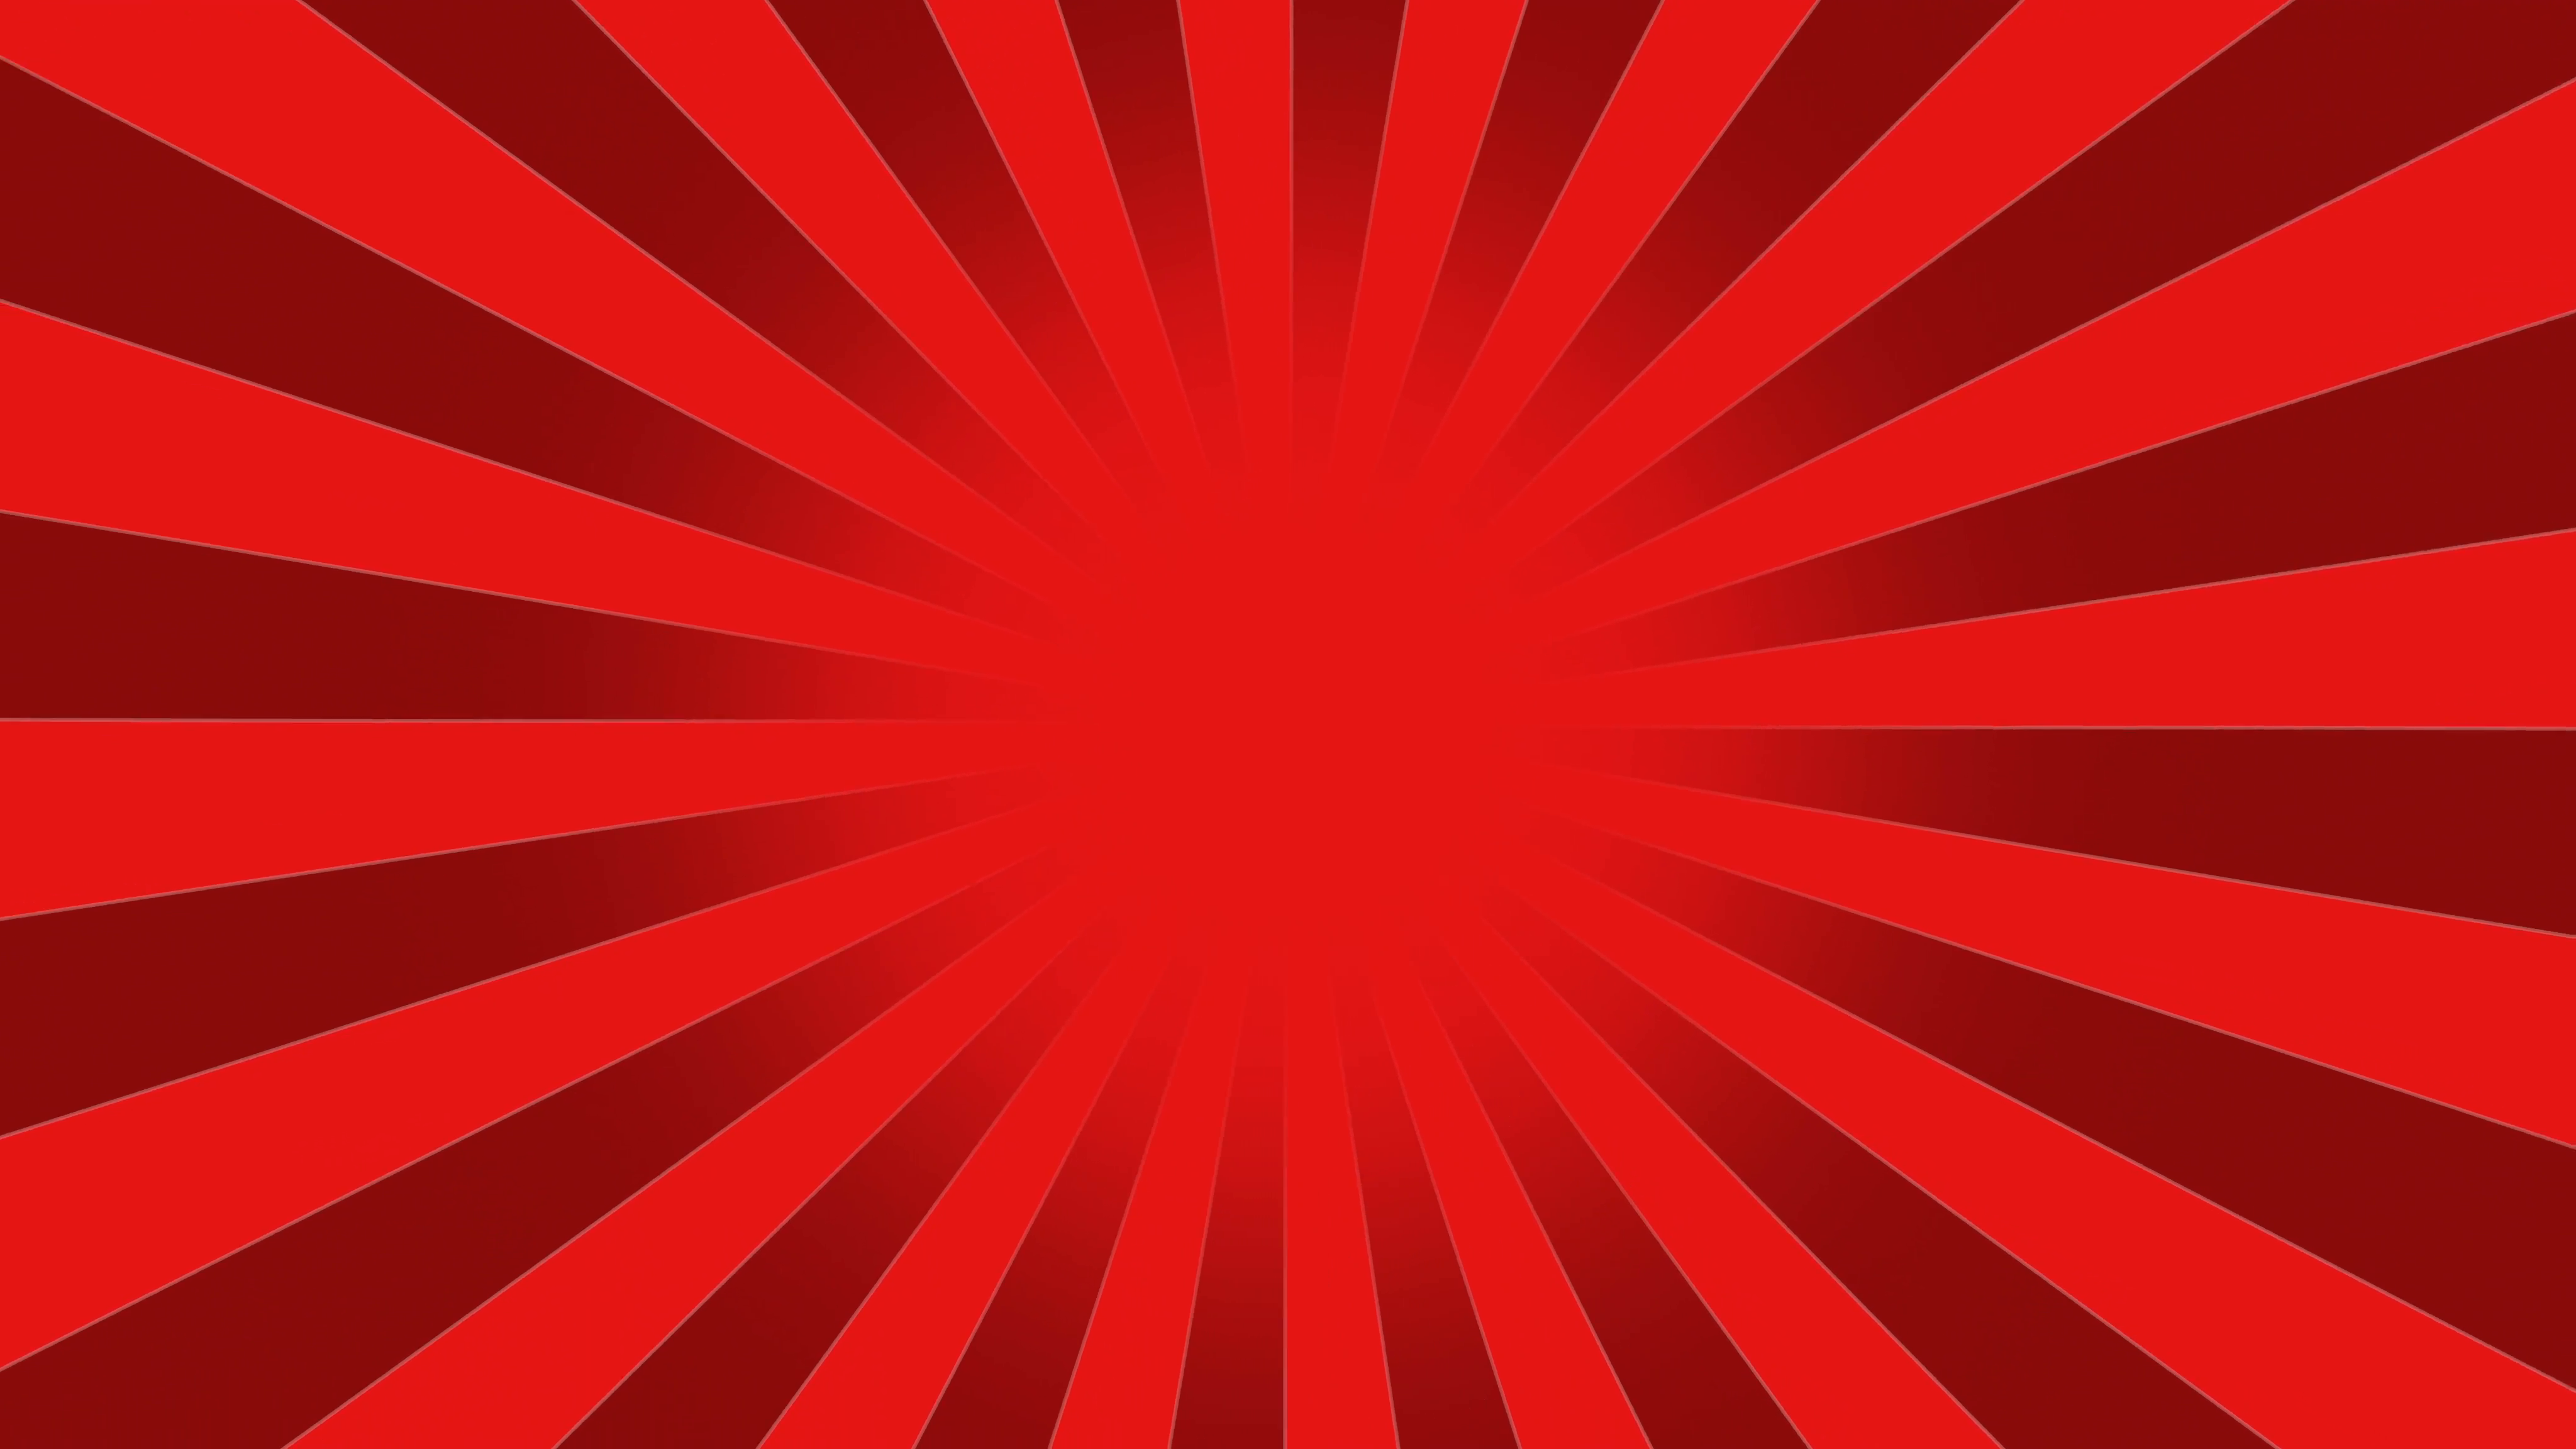 4096x2304 Red Burst Vector Background. Cartoon Background With Space For